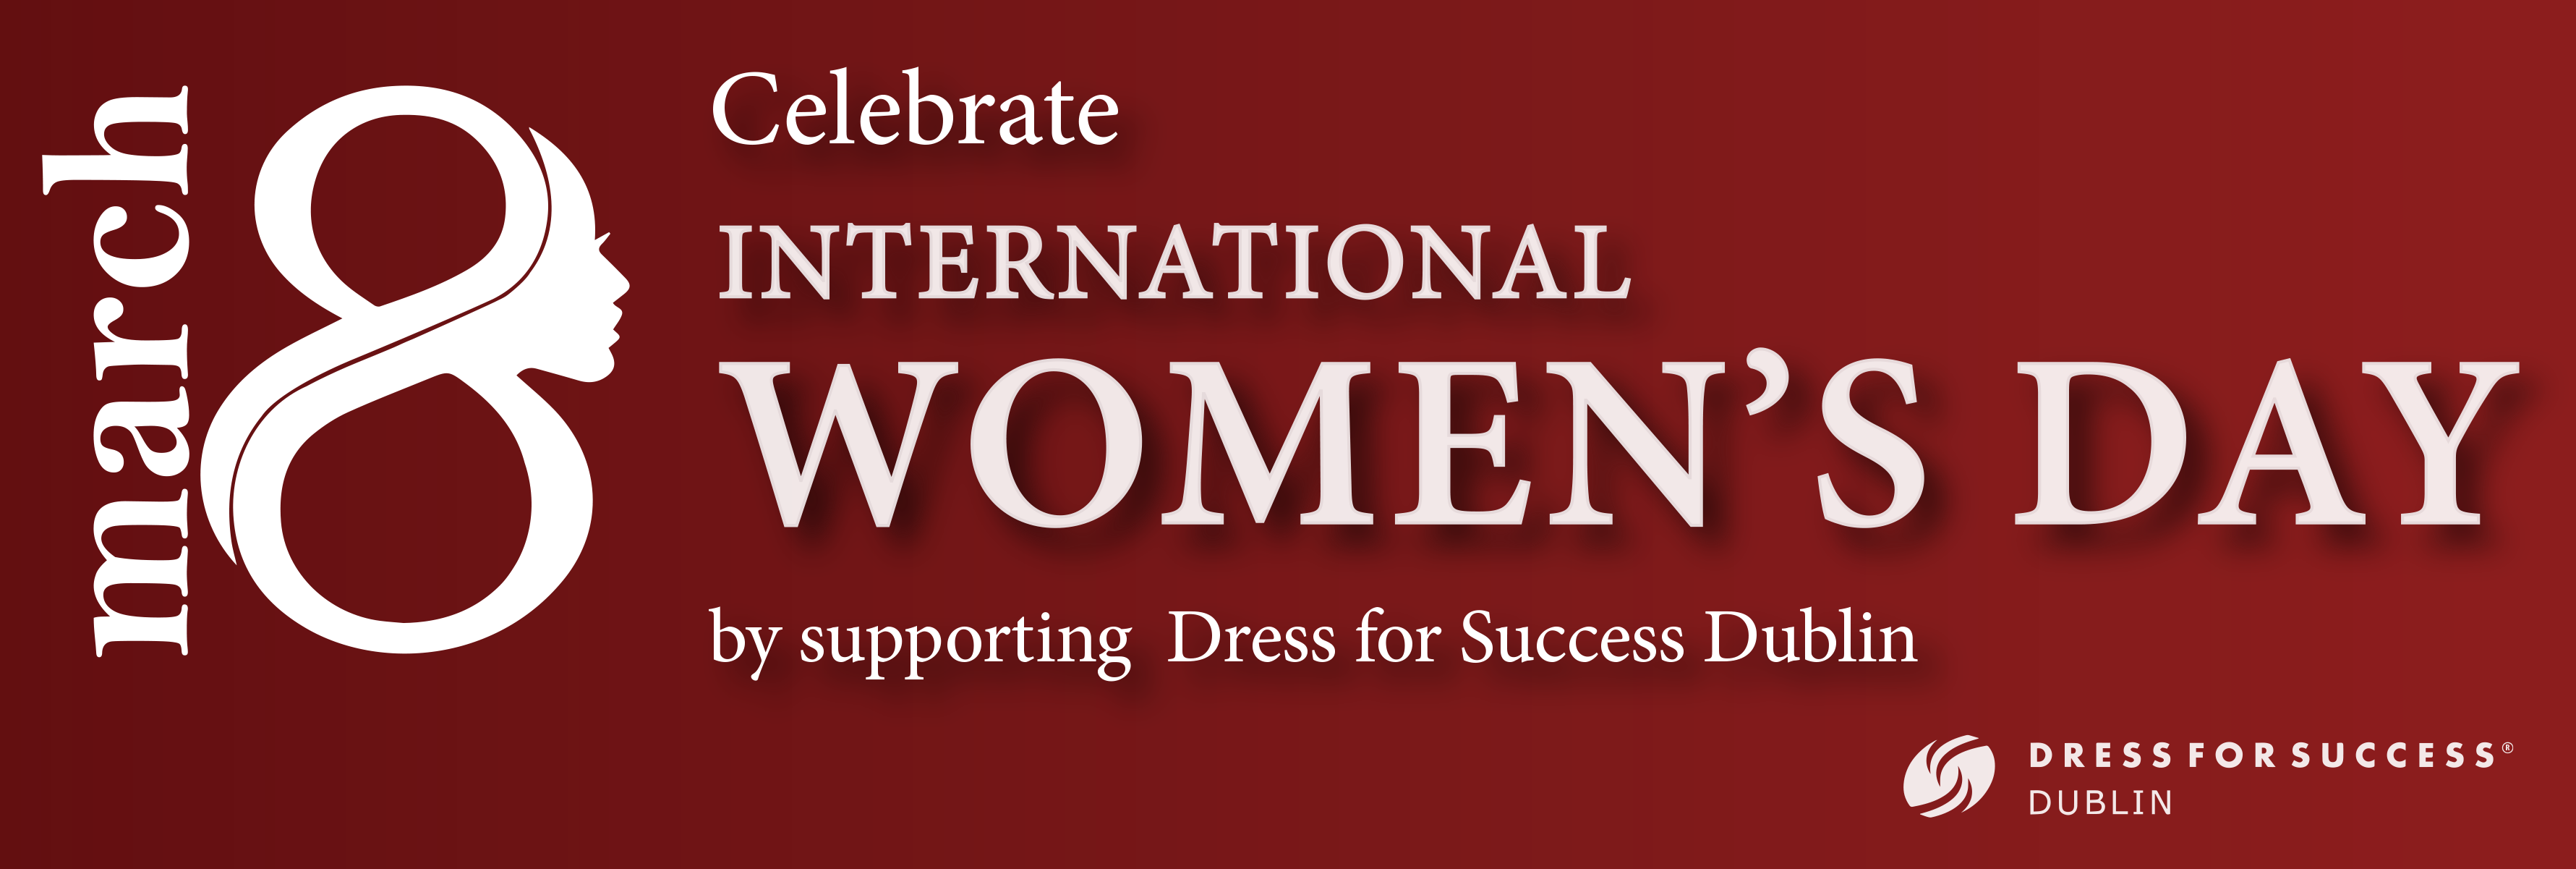 international women s day is just a month away this th international women s day is just a month away this 8th dress for success dublin wants you to showcase womenatwork dress for success